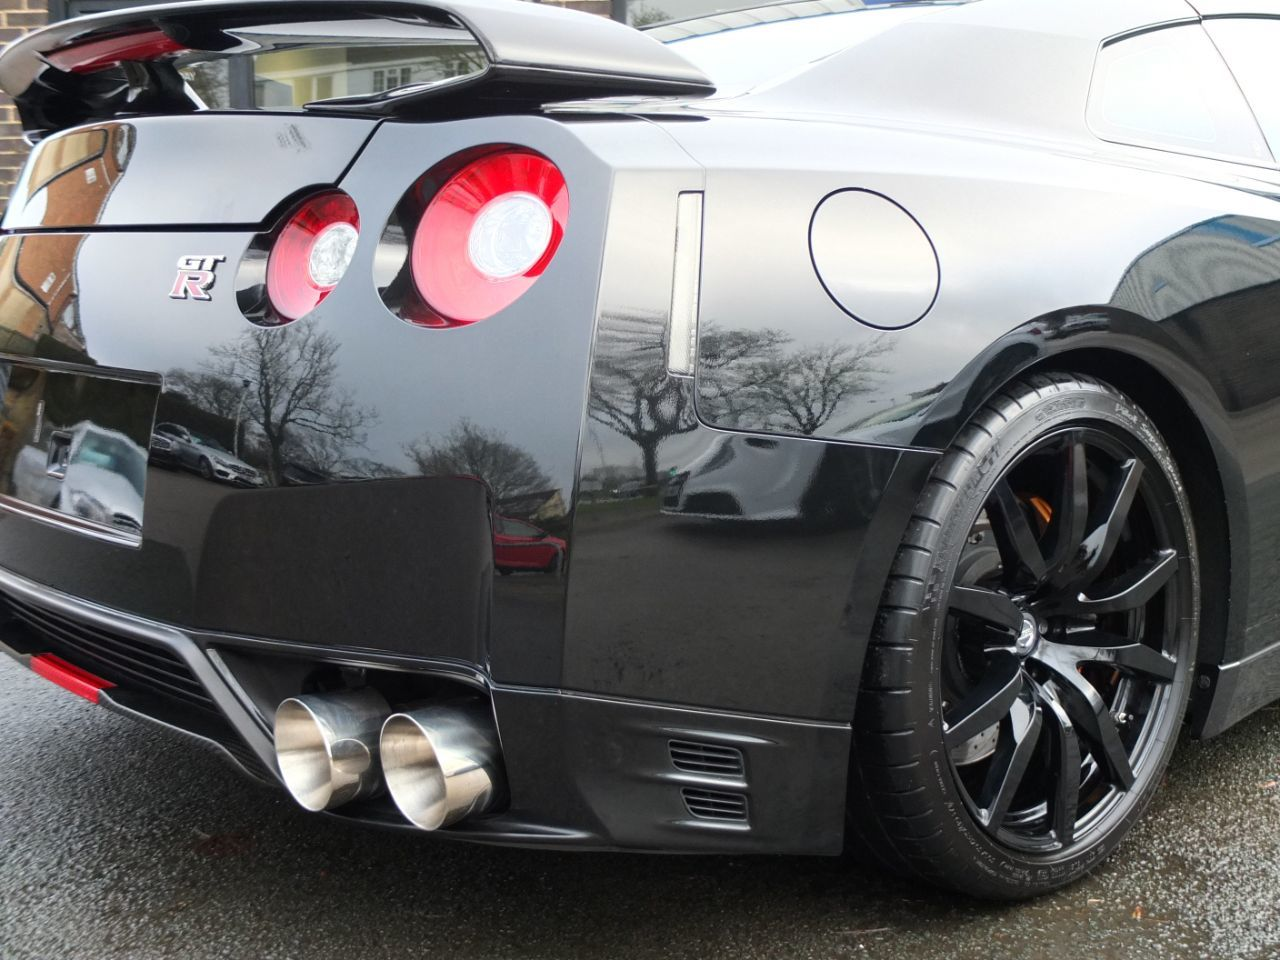 Nissan GT-R 3.8 Premium LITCHFIELD STAGE 4 653bhp Coupe Petrol Black Pearl